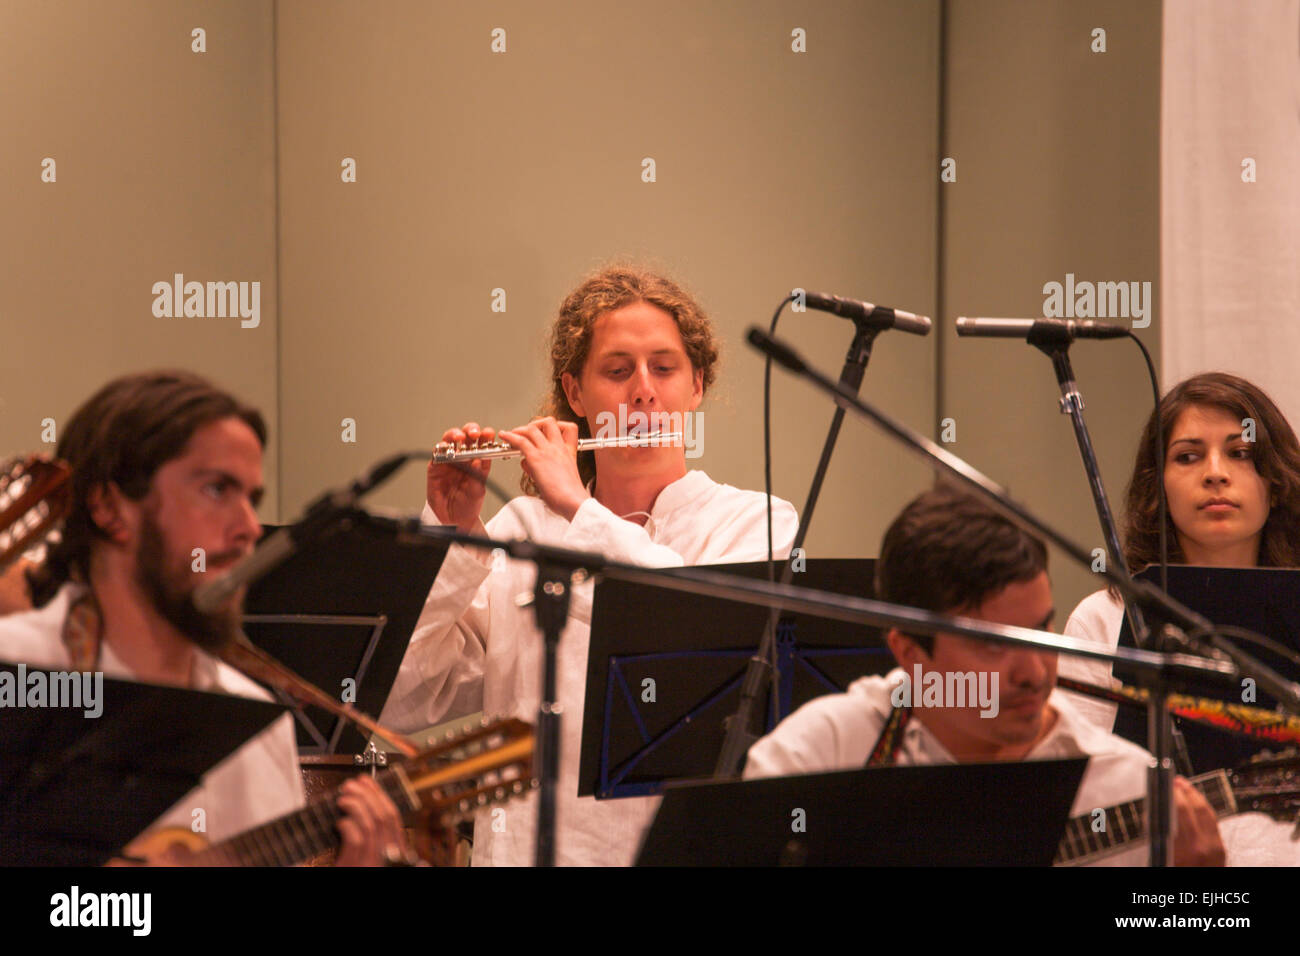 Chilean folk and classical concert in Viña del Mar, Chile - Stock Image